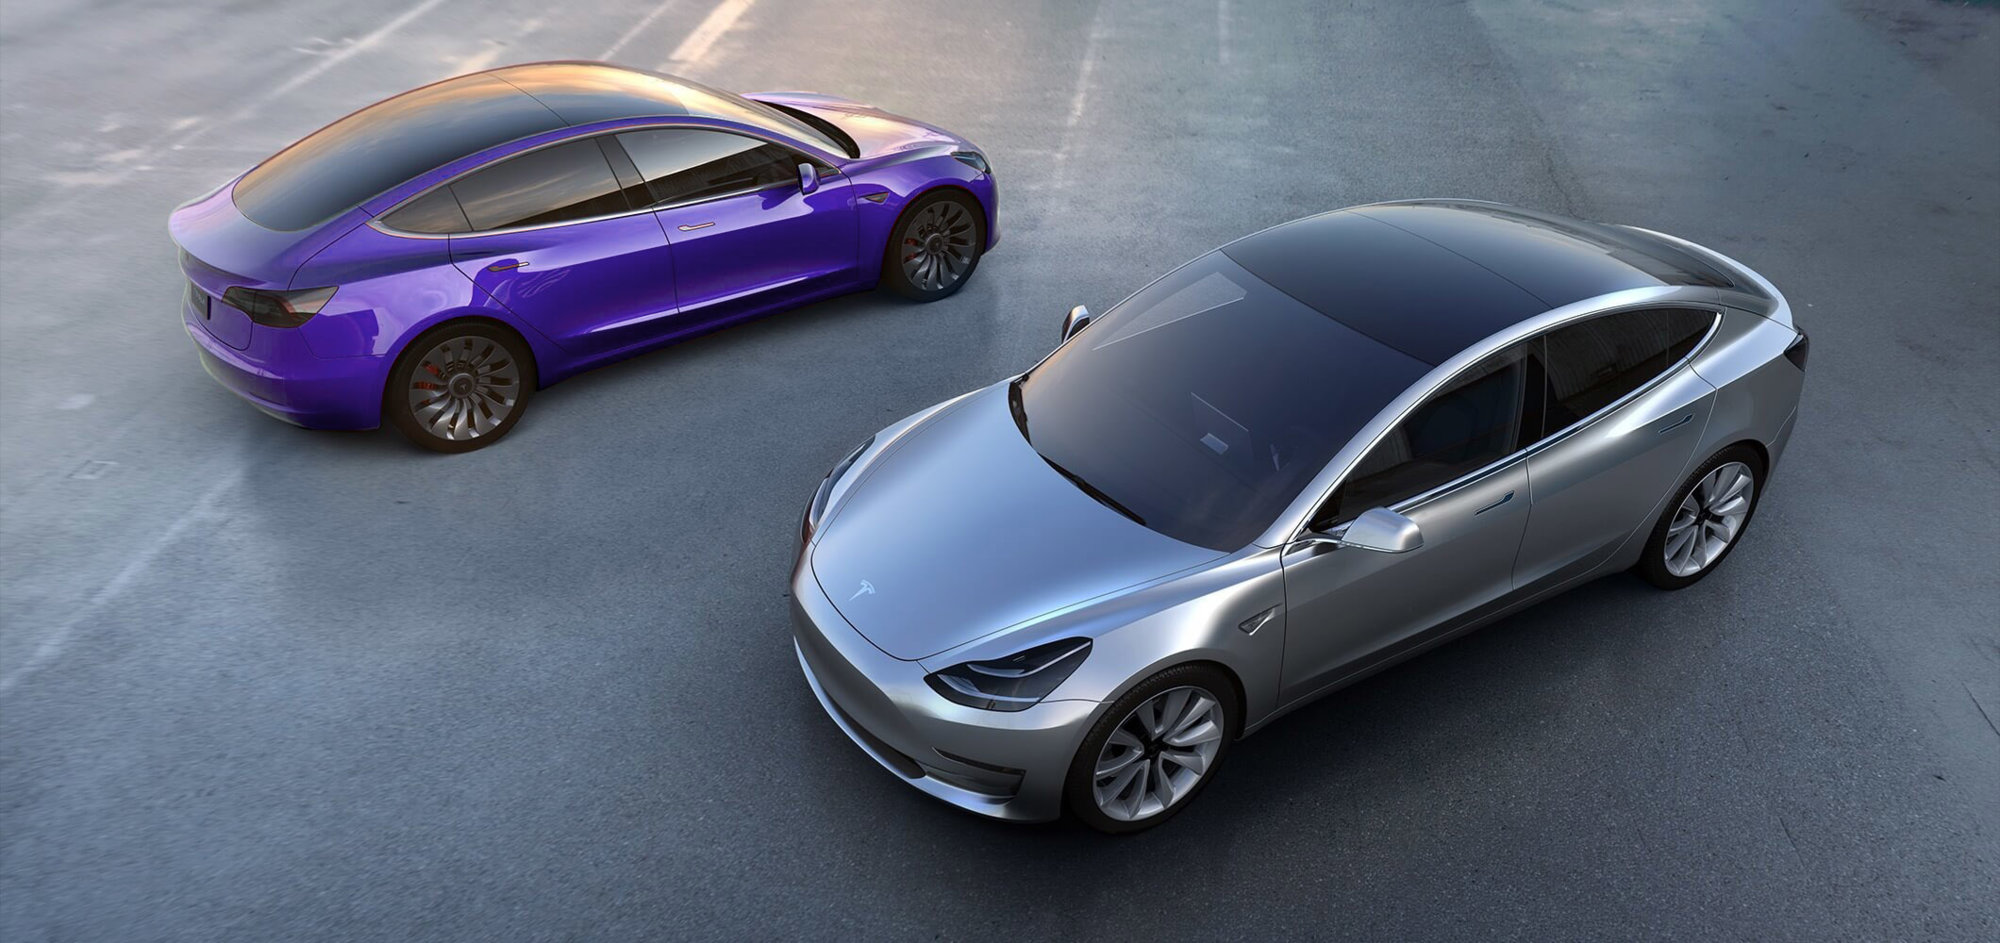 model3_colorMockup_purple_v01.jpg